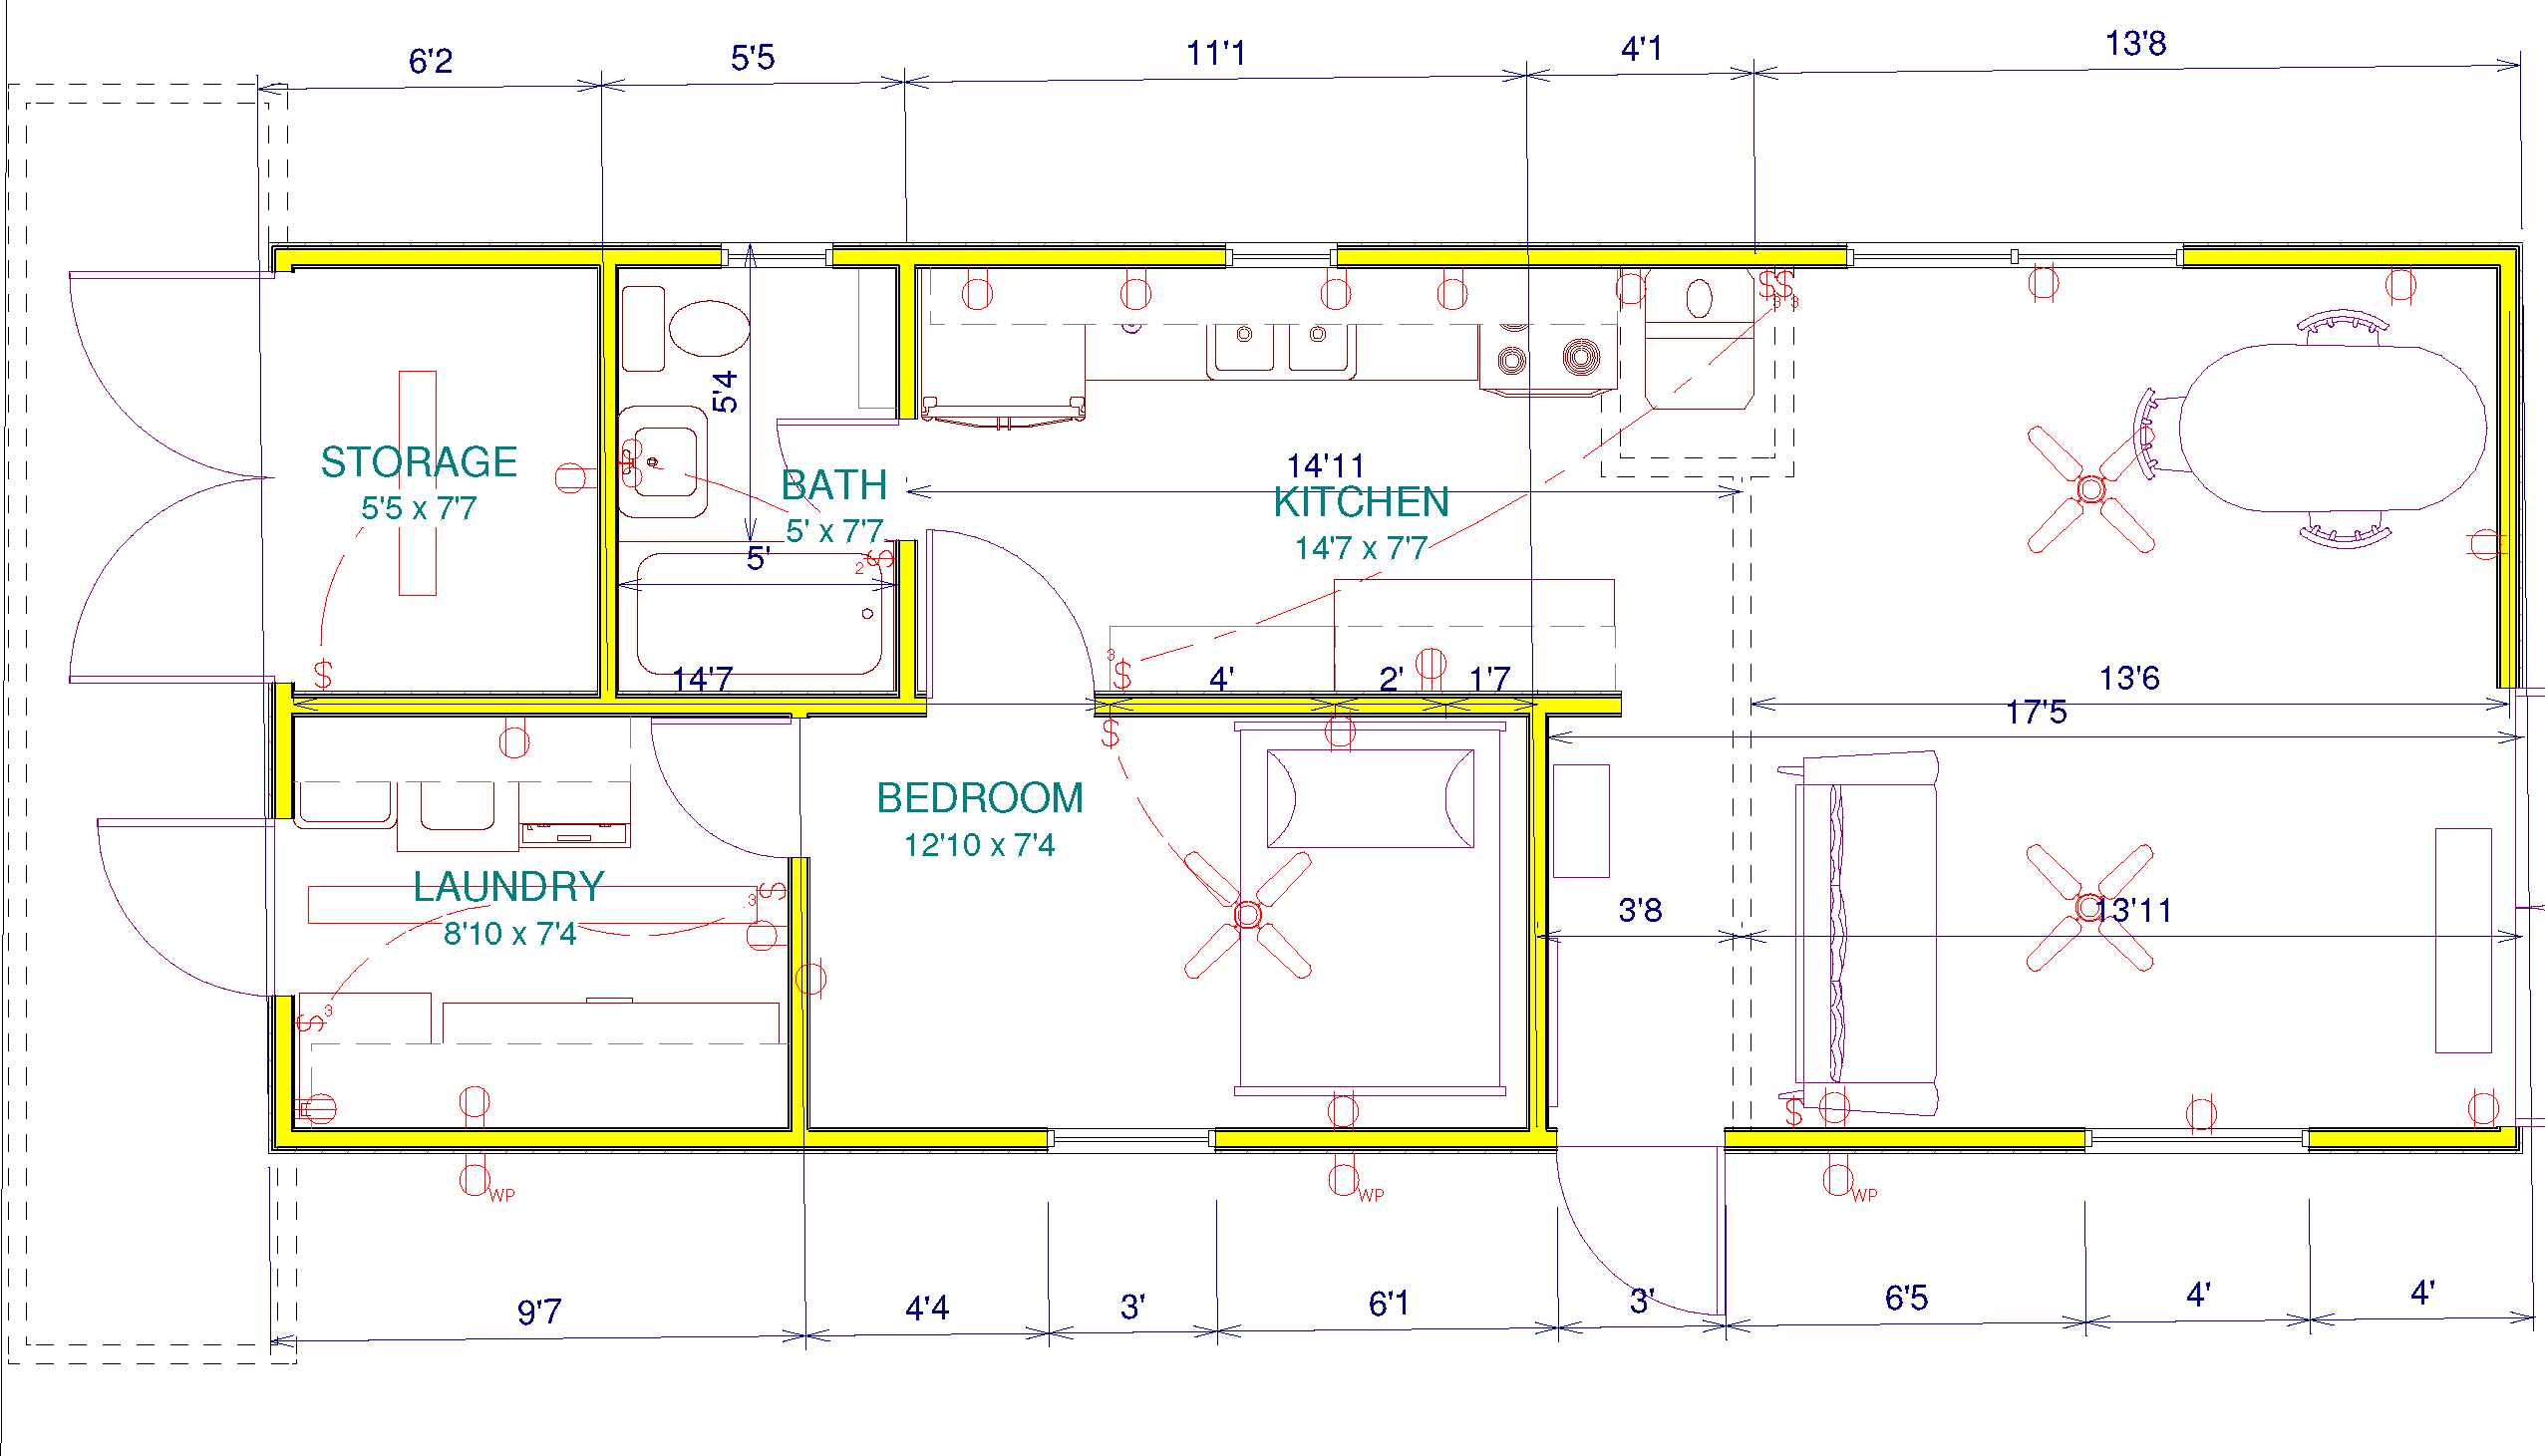 Diy pool house storage building plans pdf download easy for Diy pool house plans